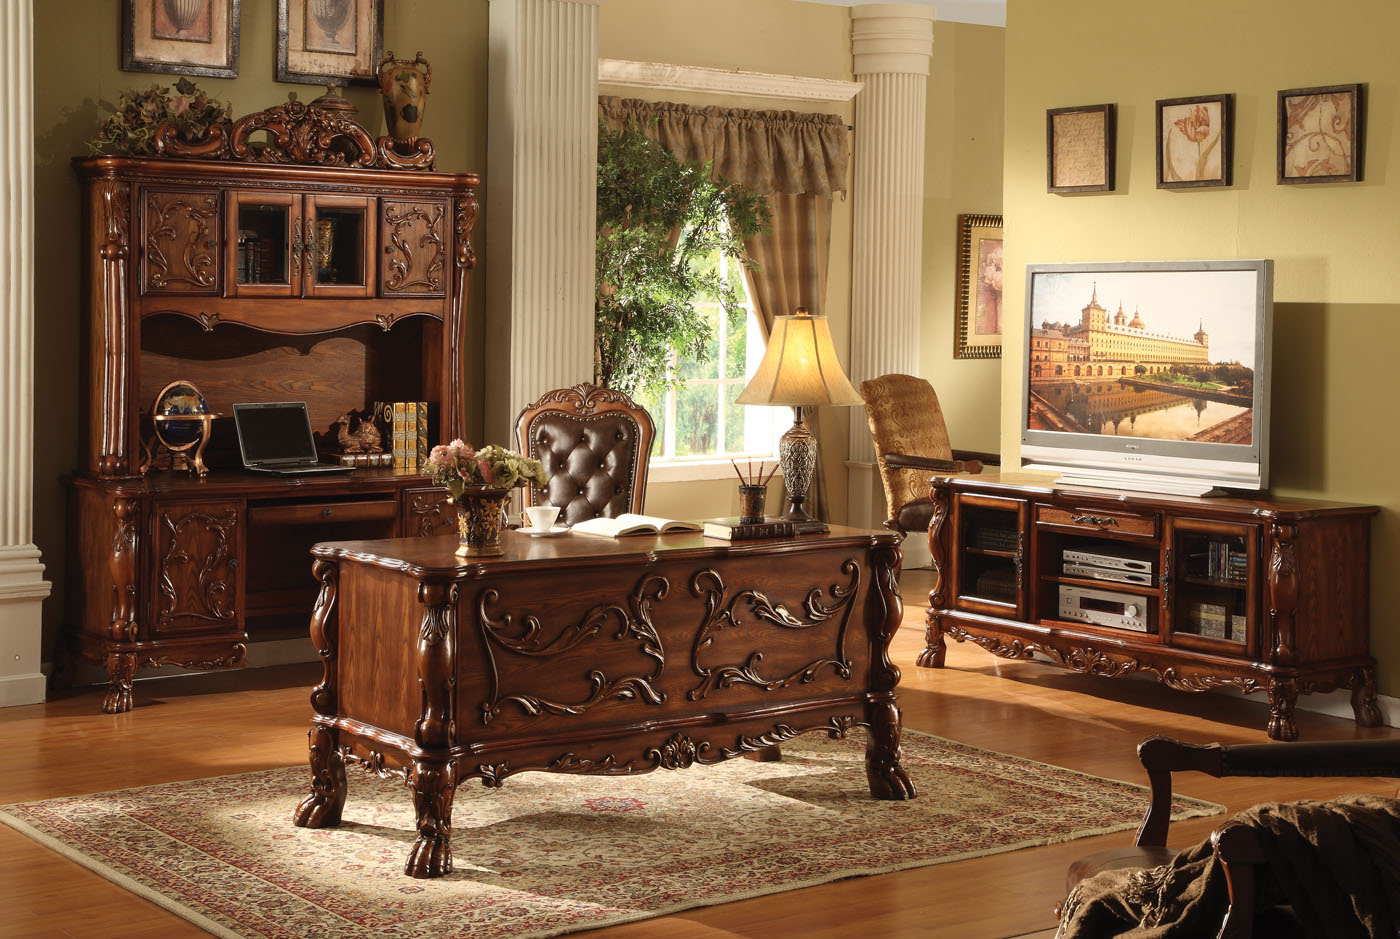 Shop Now For The Acme Dresden Office Desk And Bookcase Set Accuweather Shop